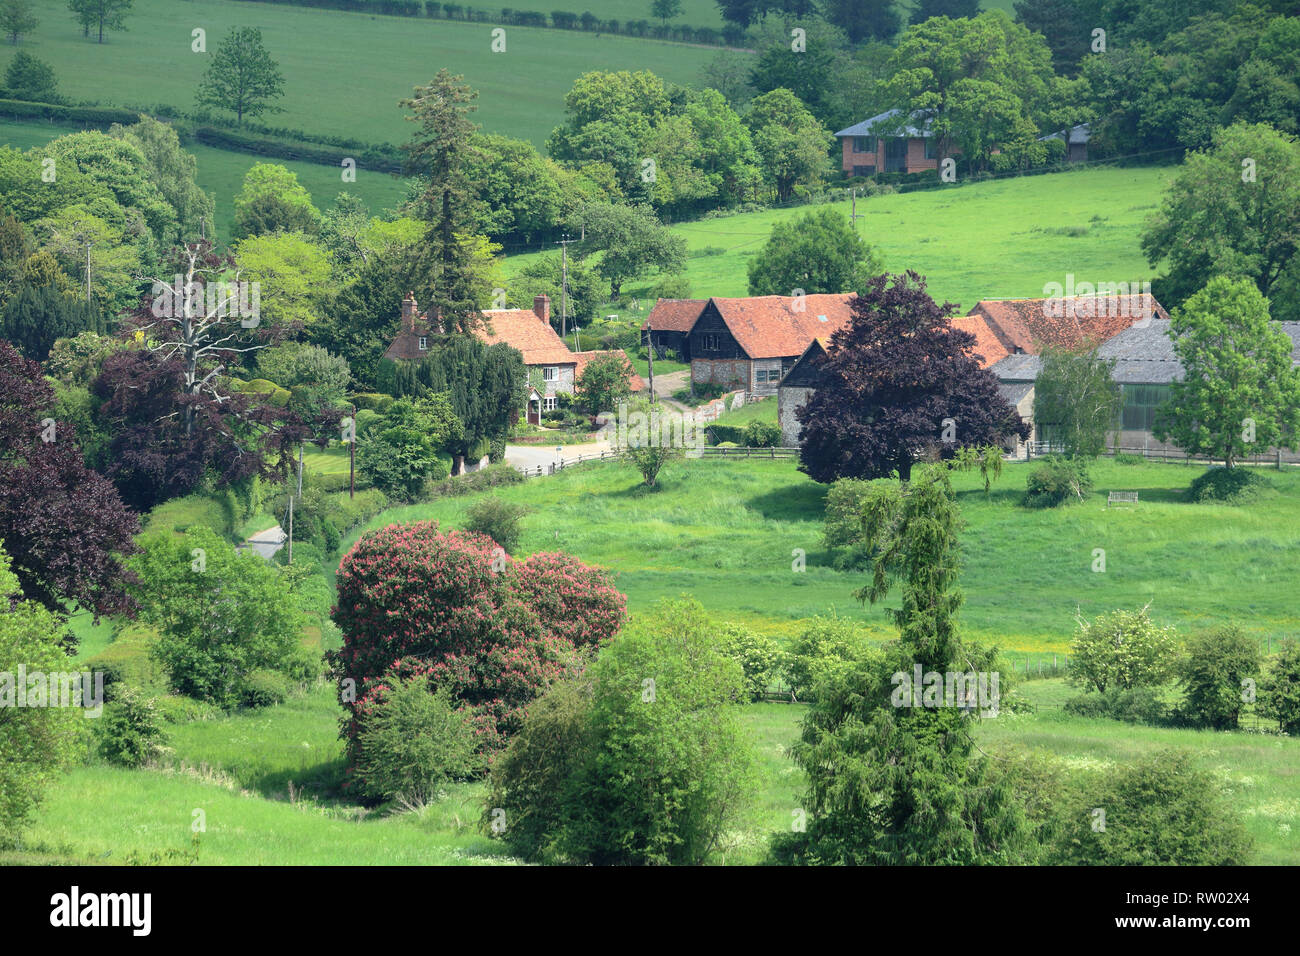 An English Rural Landscape in the Hambleden Valley in the Chiltern Hills with Farmhouse in the valley - Stock Image